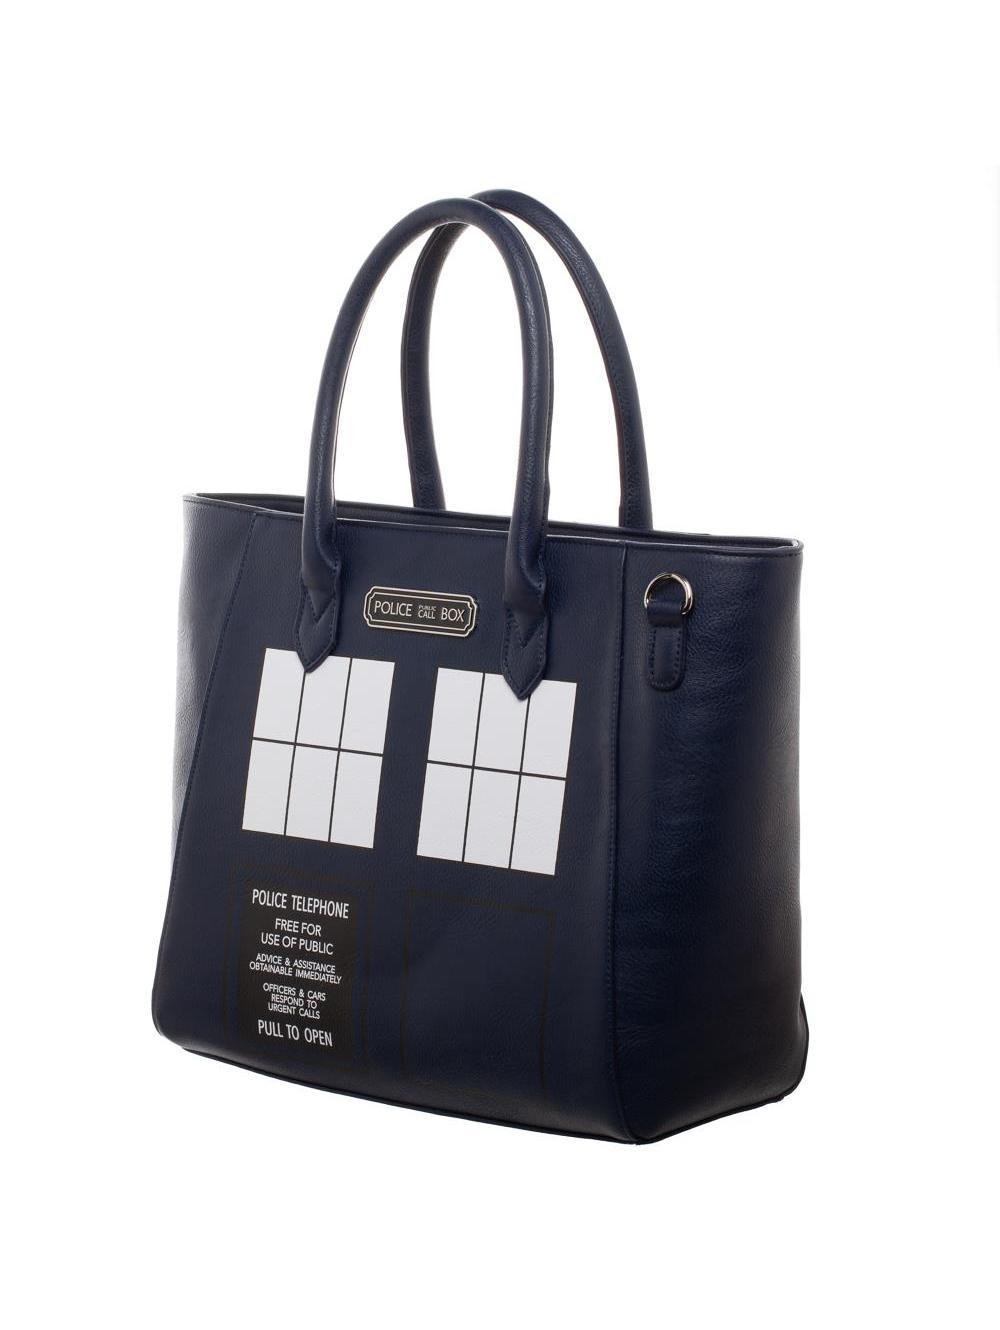 DOCTOR WHO - TRADIS Season 11 Tote Bag